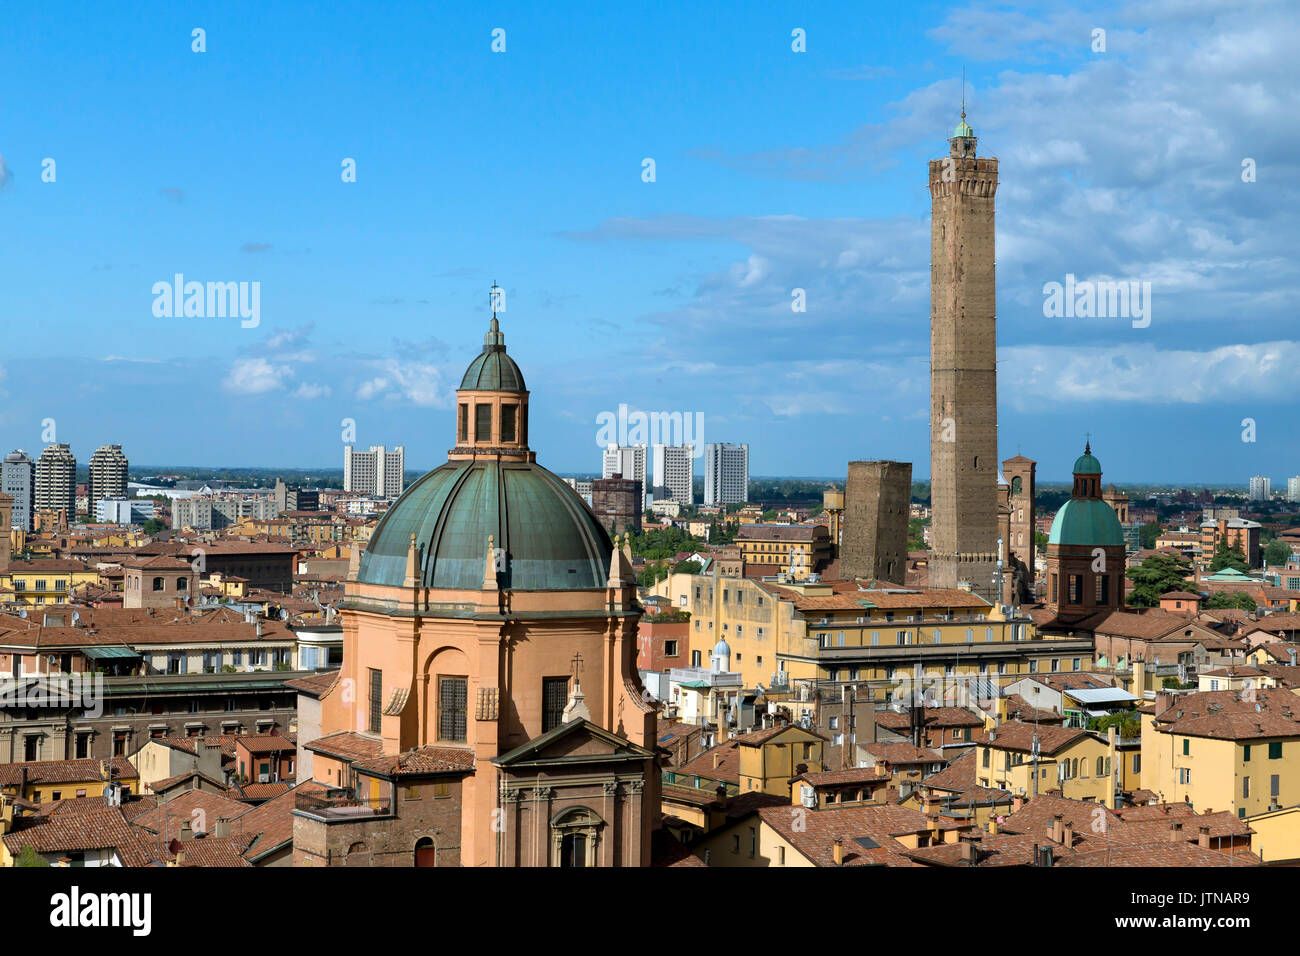 Rooftop view of 2 towers, Bologna, Emilia-Romagna region, Italy - Stock Image